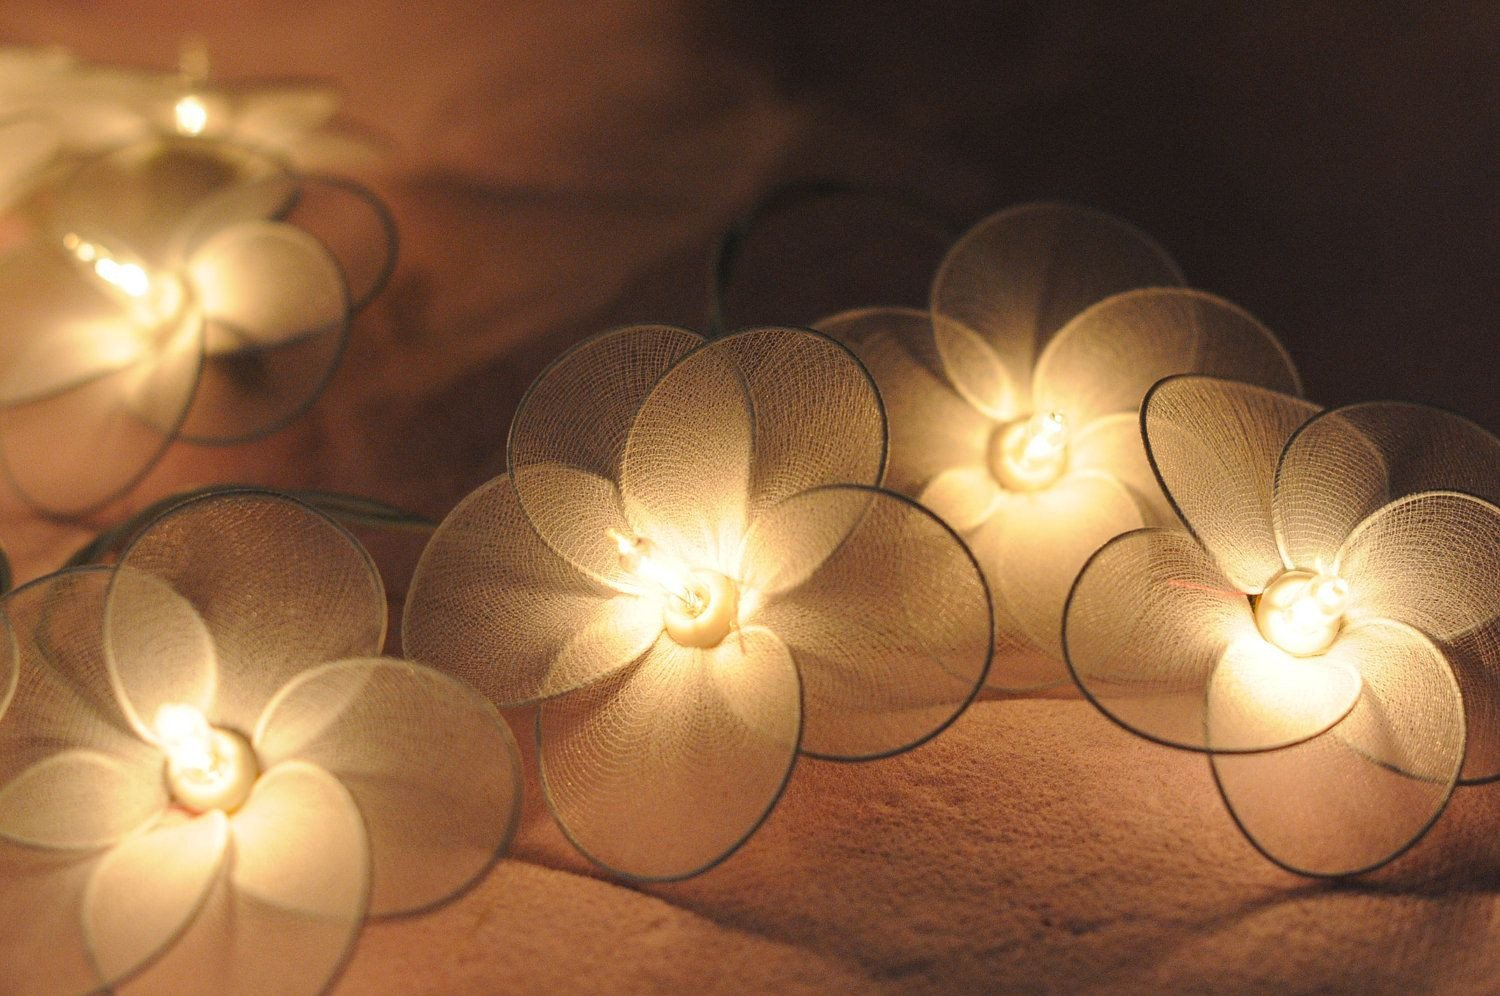 Best String Light for Bedroom Inspirational 20 Flower Handmade In White Color String Light Patio